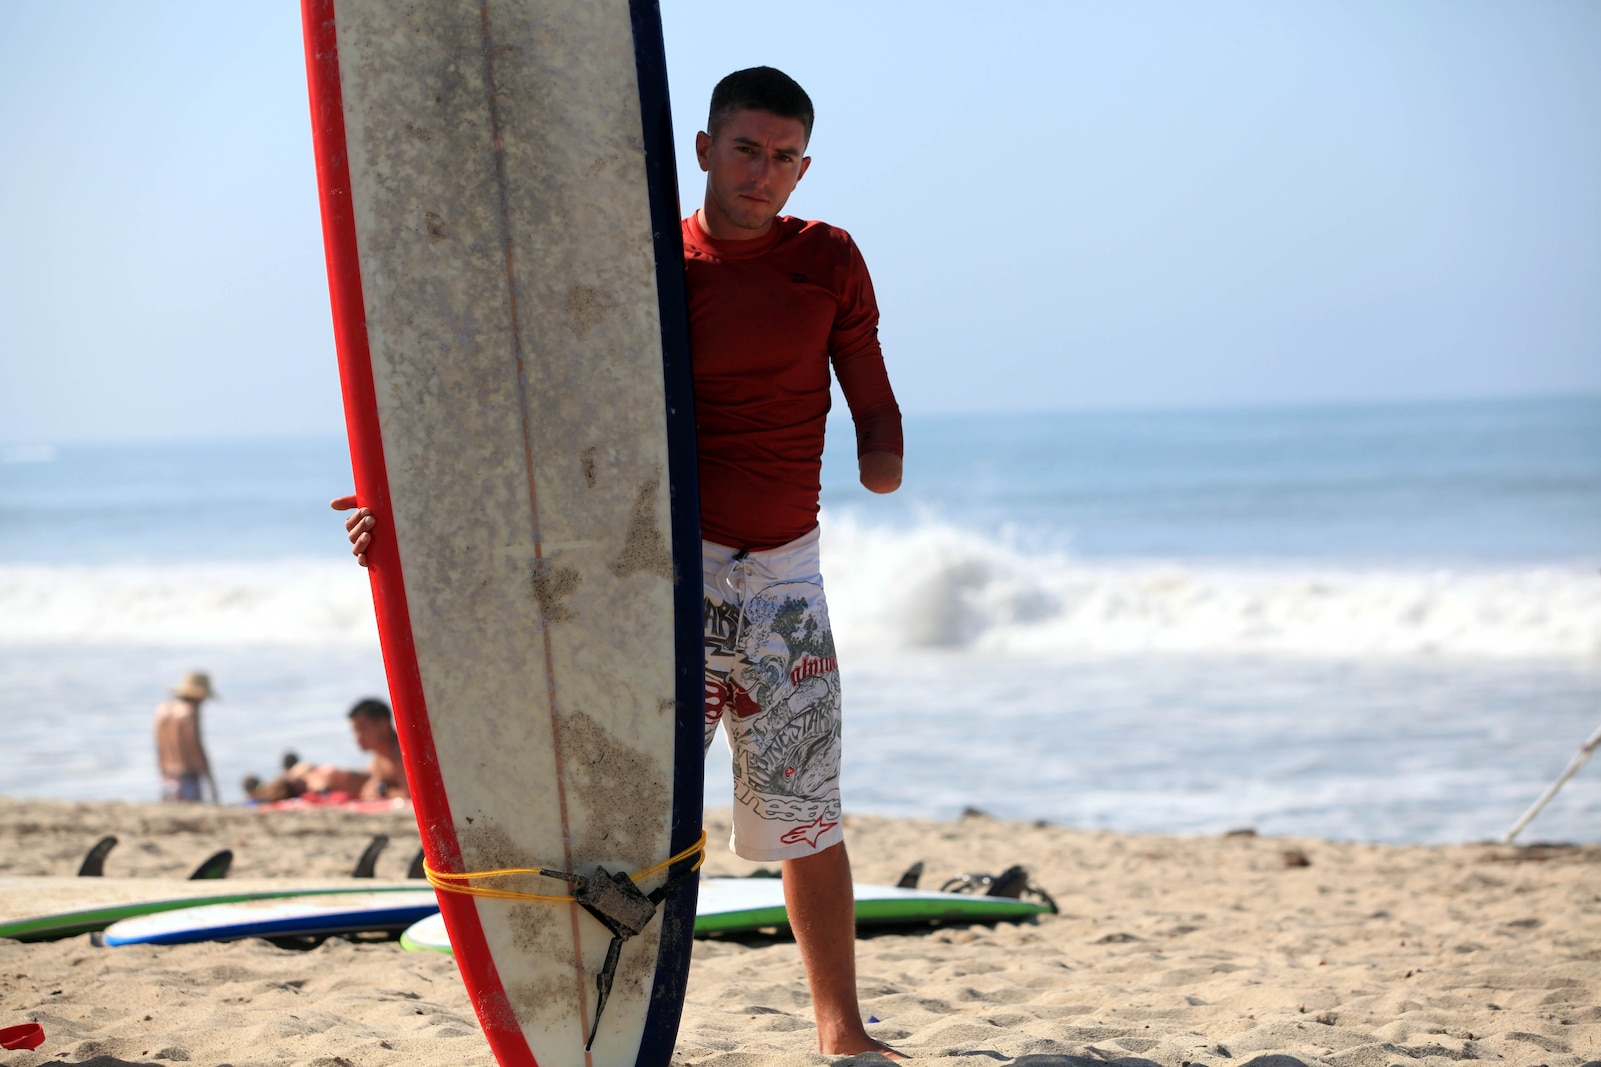 Wounded Warrior, Sgt. Michael Spivey, a combat engineer with 1st Combat Engineer Battalion, stands with his surfboard, waiting for another participant, before attacking the Pacific Ocean waves during a three-day surf camp at Camp Pendleton's San Onofre Beach, Aug. 12. Operation Amped held the sport therapy camp to provide surfing lessons to rehabilitating injured service members and their families.